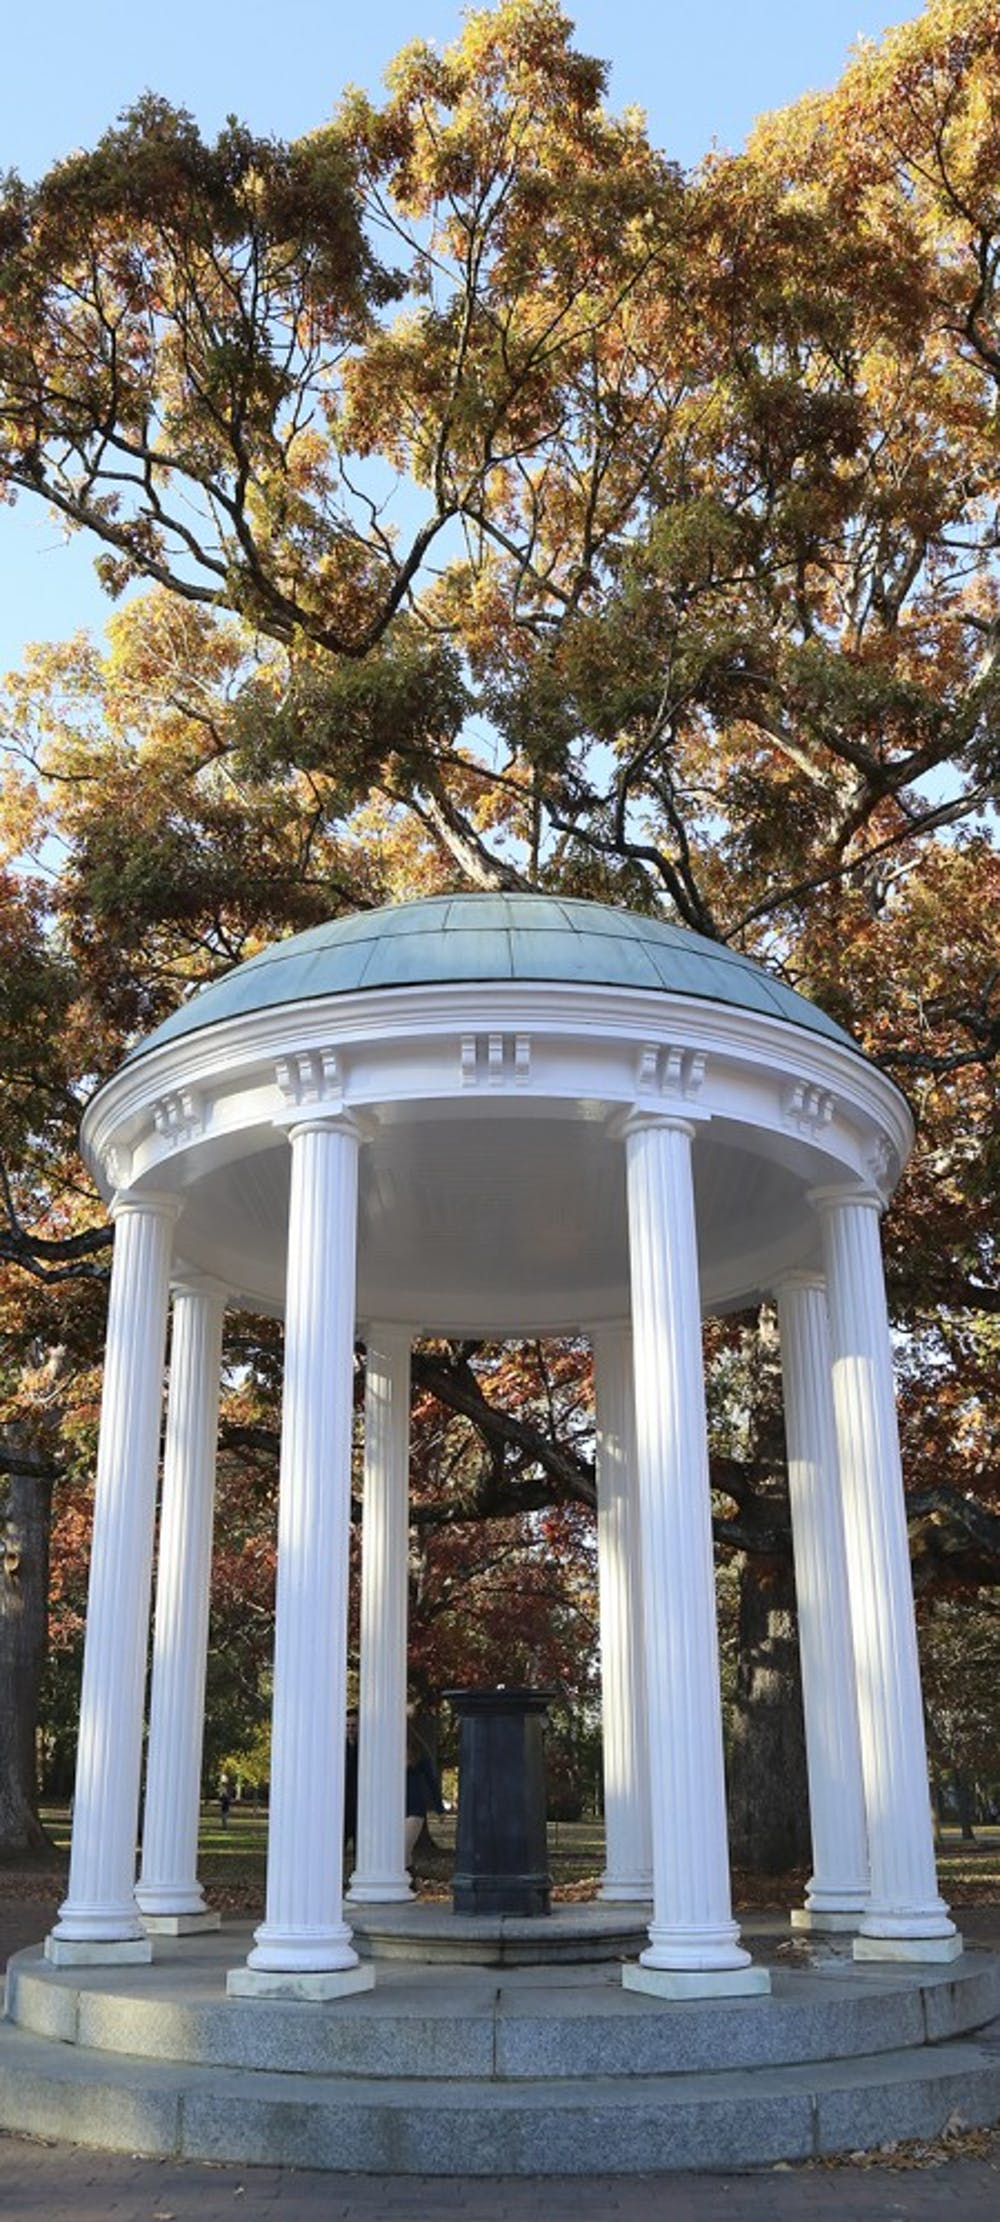 <p>The Old Well at UNC-Chapel Hil.</p>